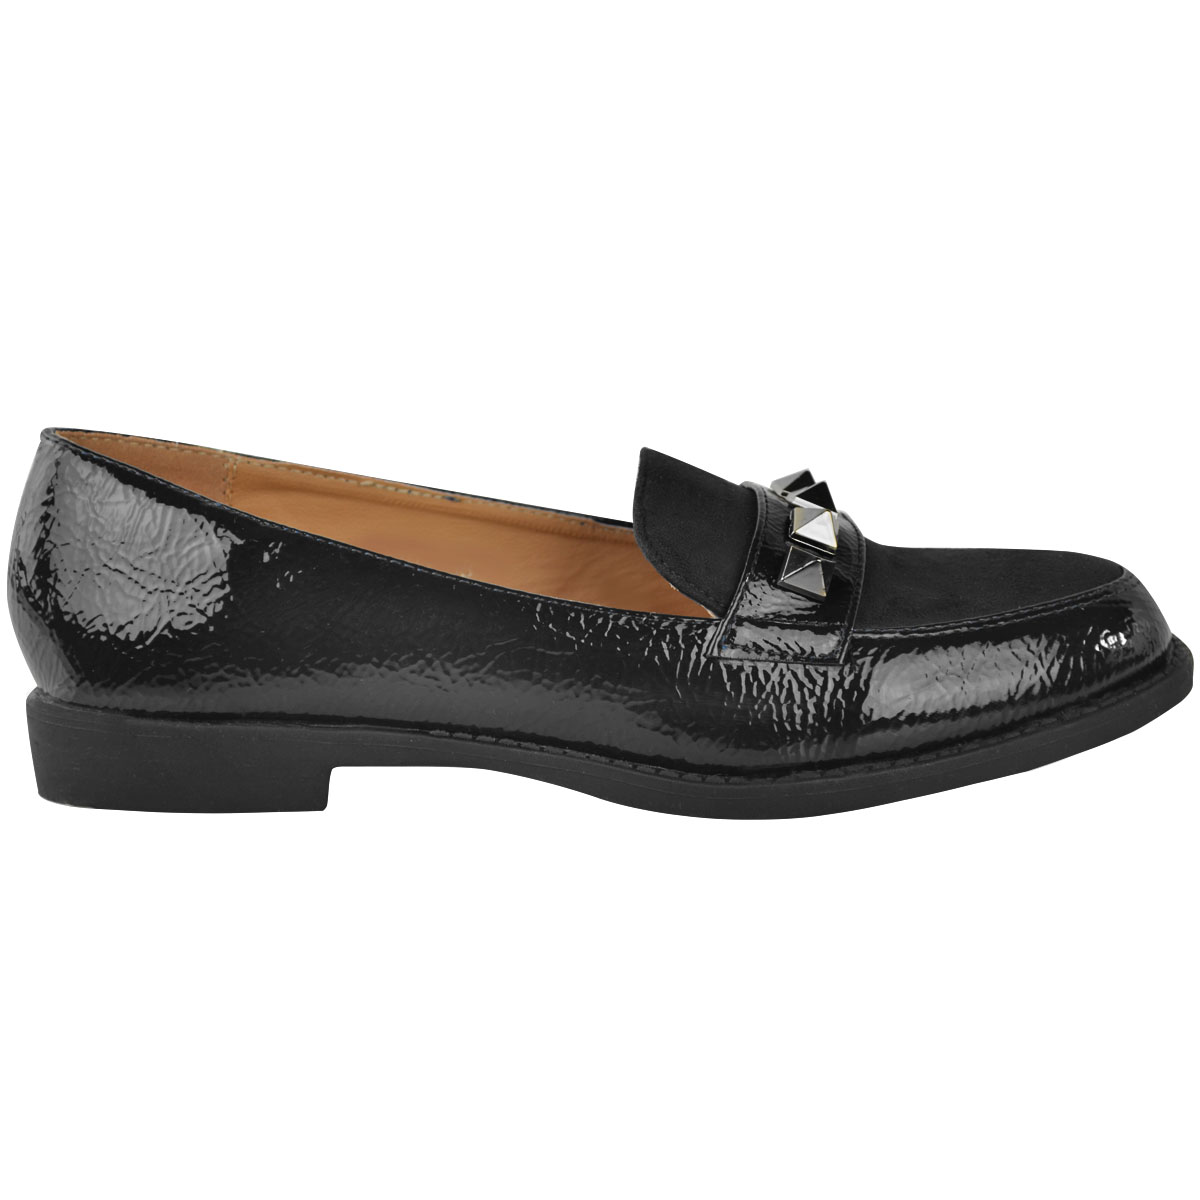 Womens-Ladies-Loafers-Brogues-Pumps-Casual-School-Office-Comfy-Work-Flats-Size thumbnail 3